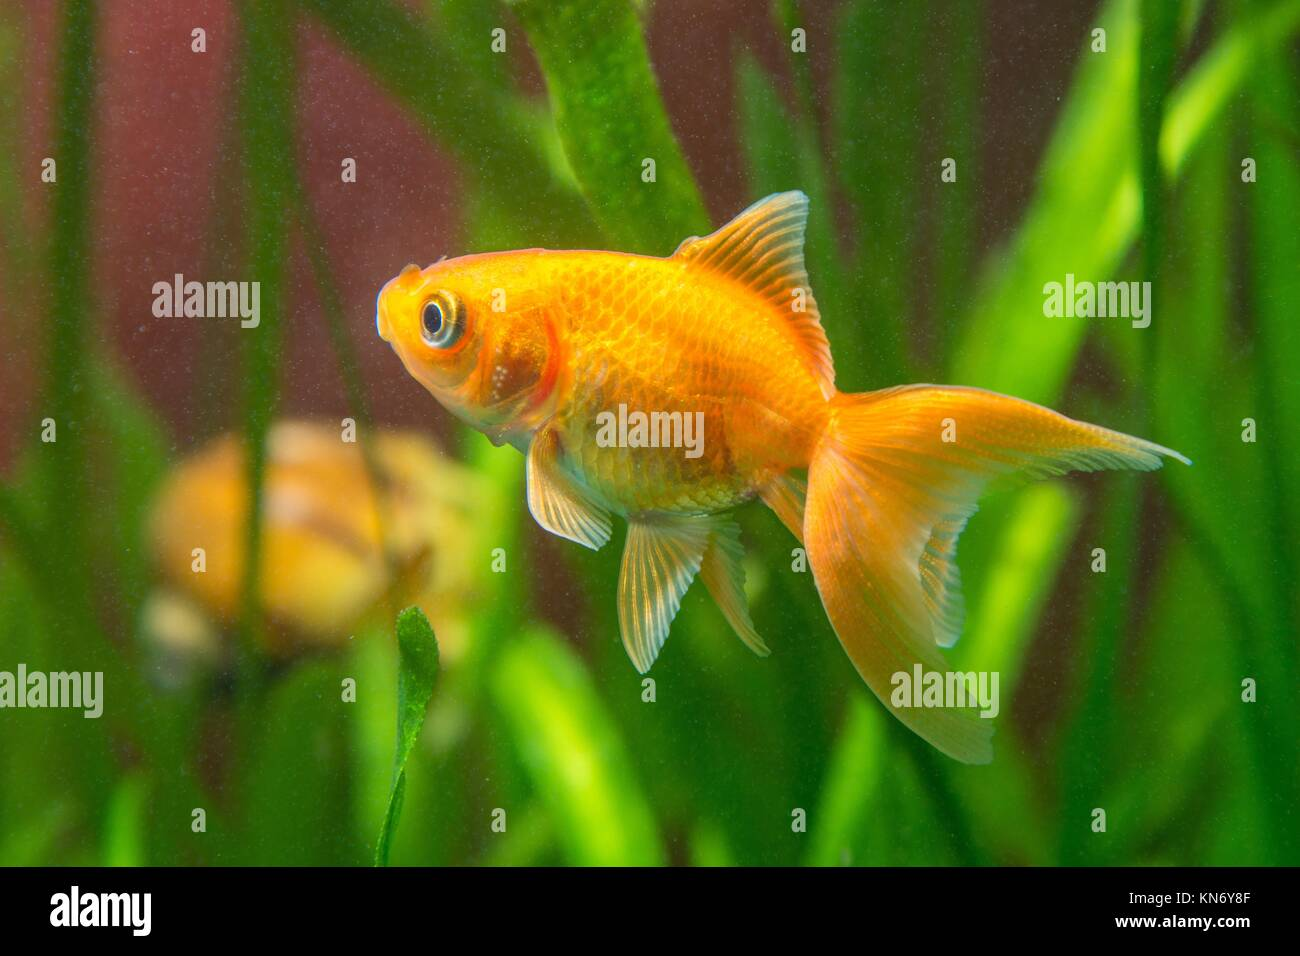 View of a goldfish in a home freshwater aquarium. - Stock Image